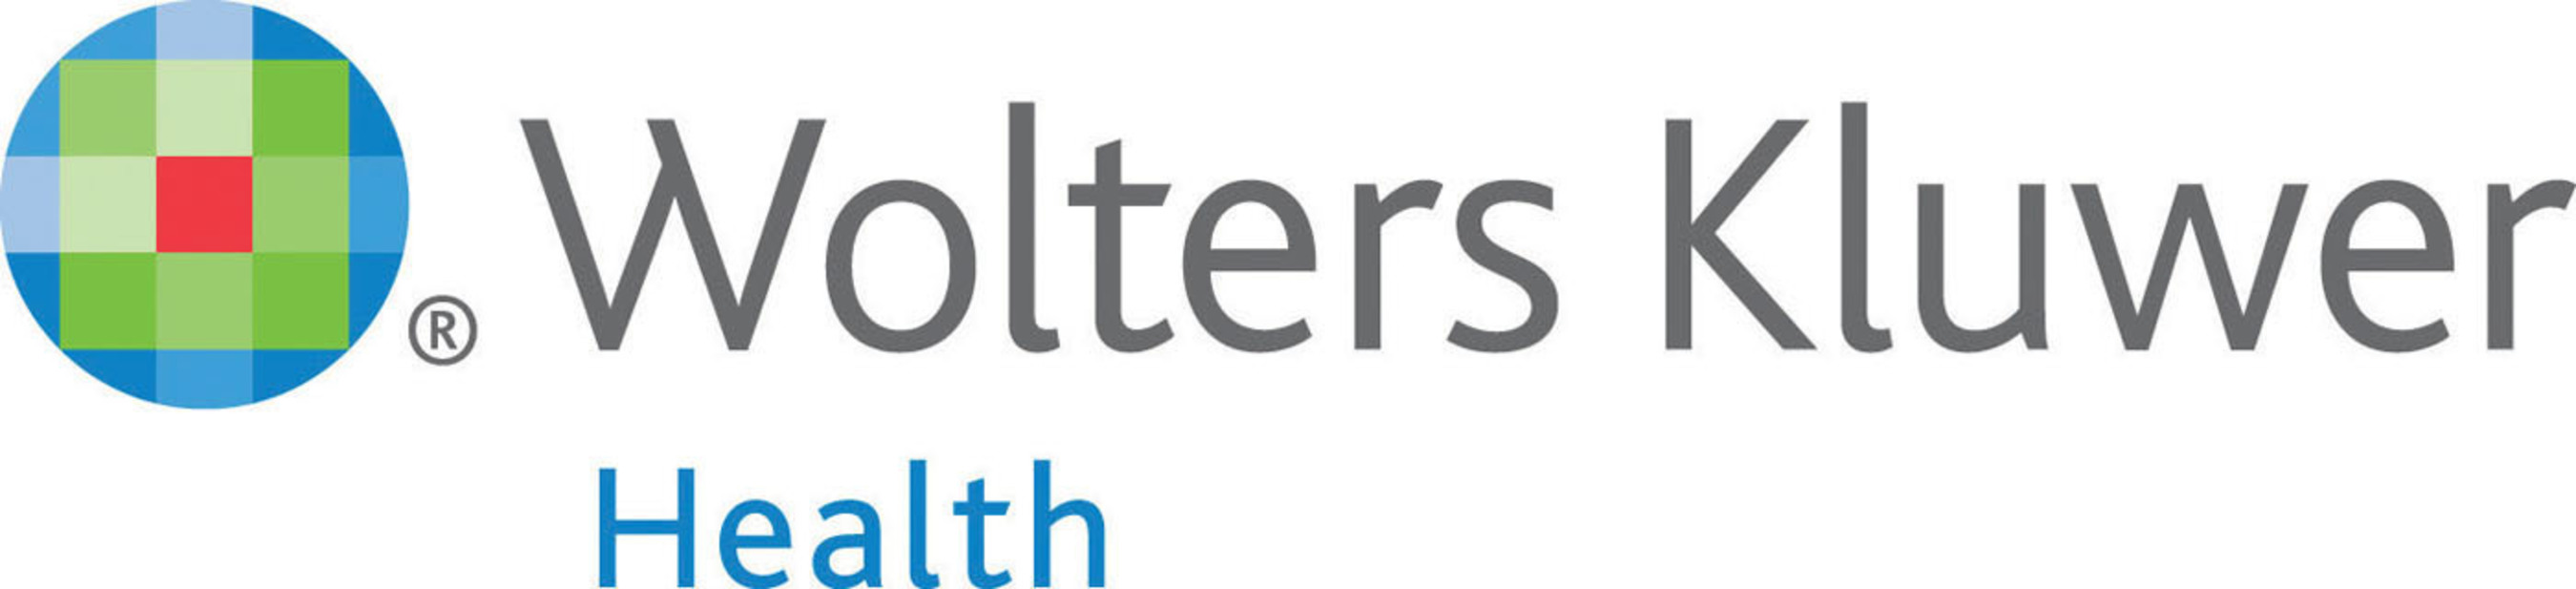 Wolters Kluwer Health.